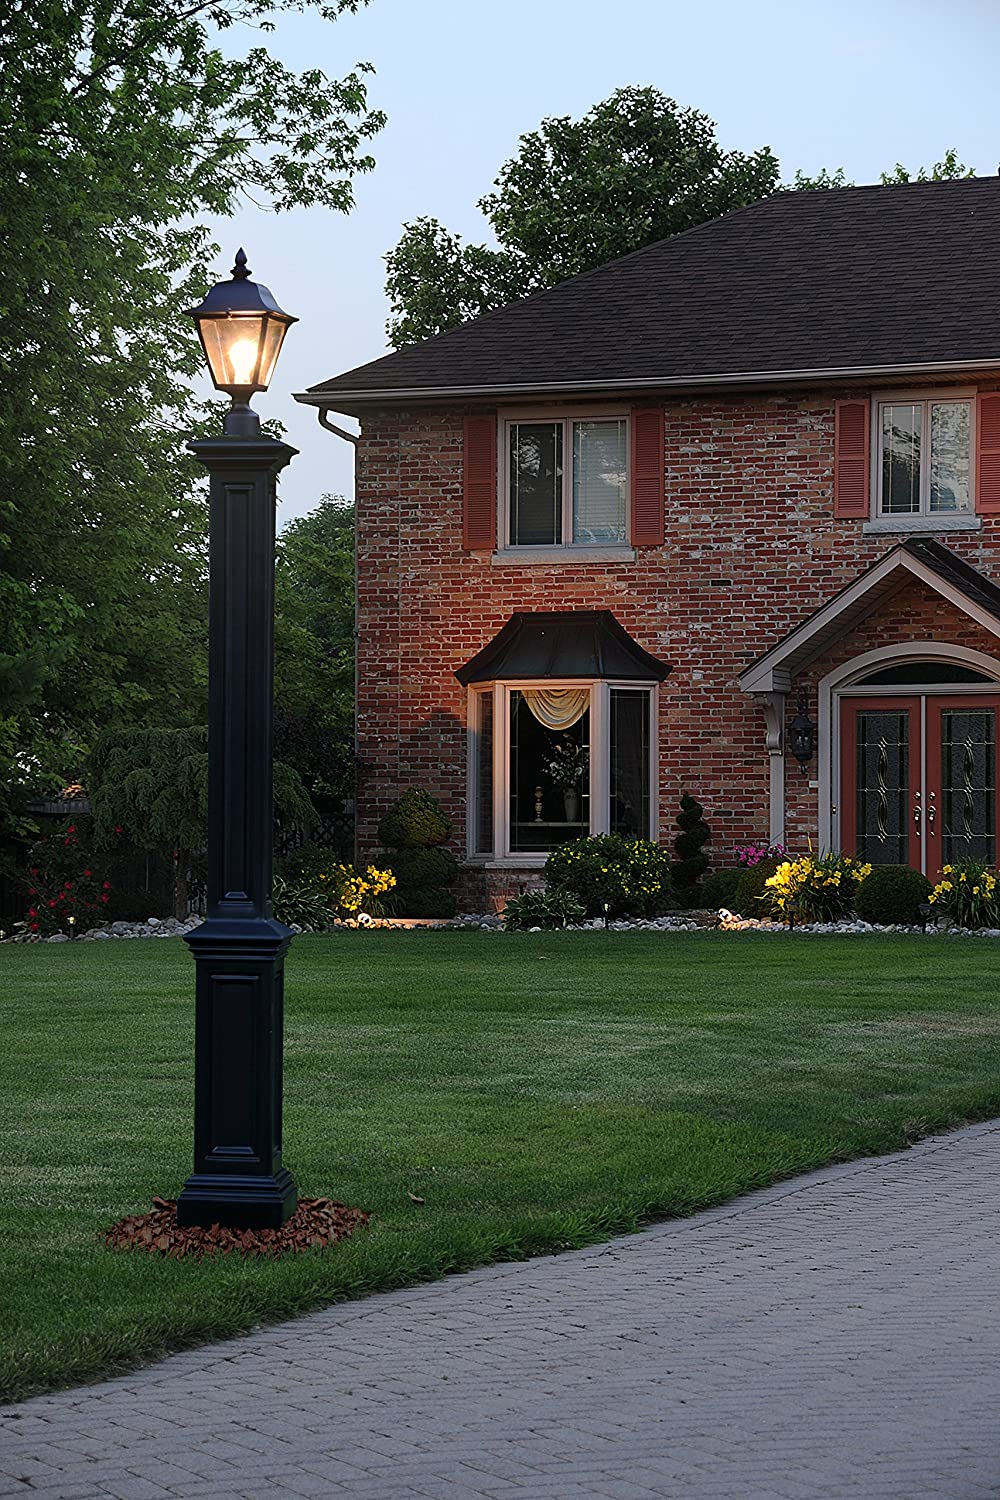 Amazon mayne 5837 bk signature lamp post decorative post only amazon mayne 5837 bk signature lamp post decorative post only black home improvement aloadofball Image collections